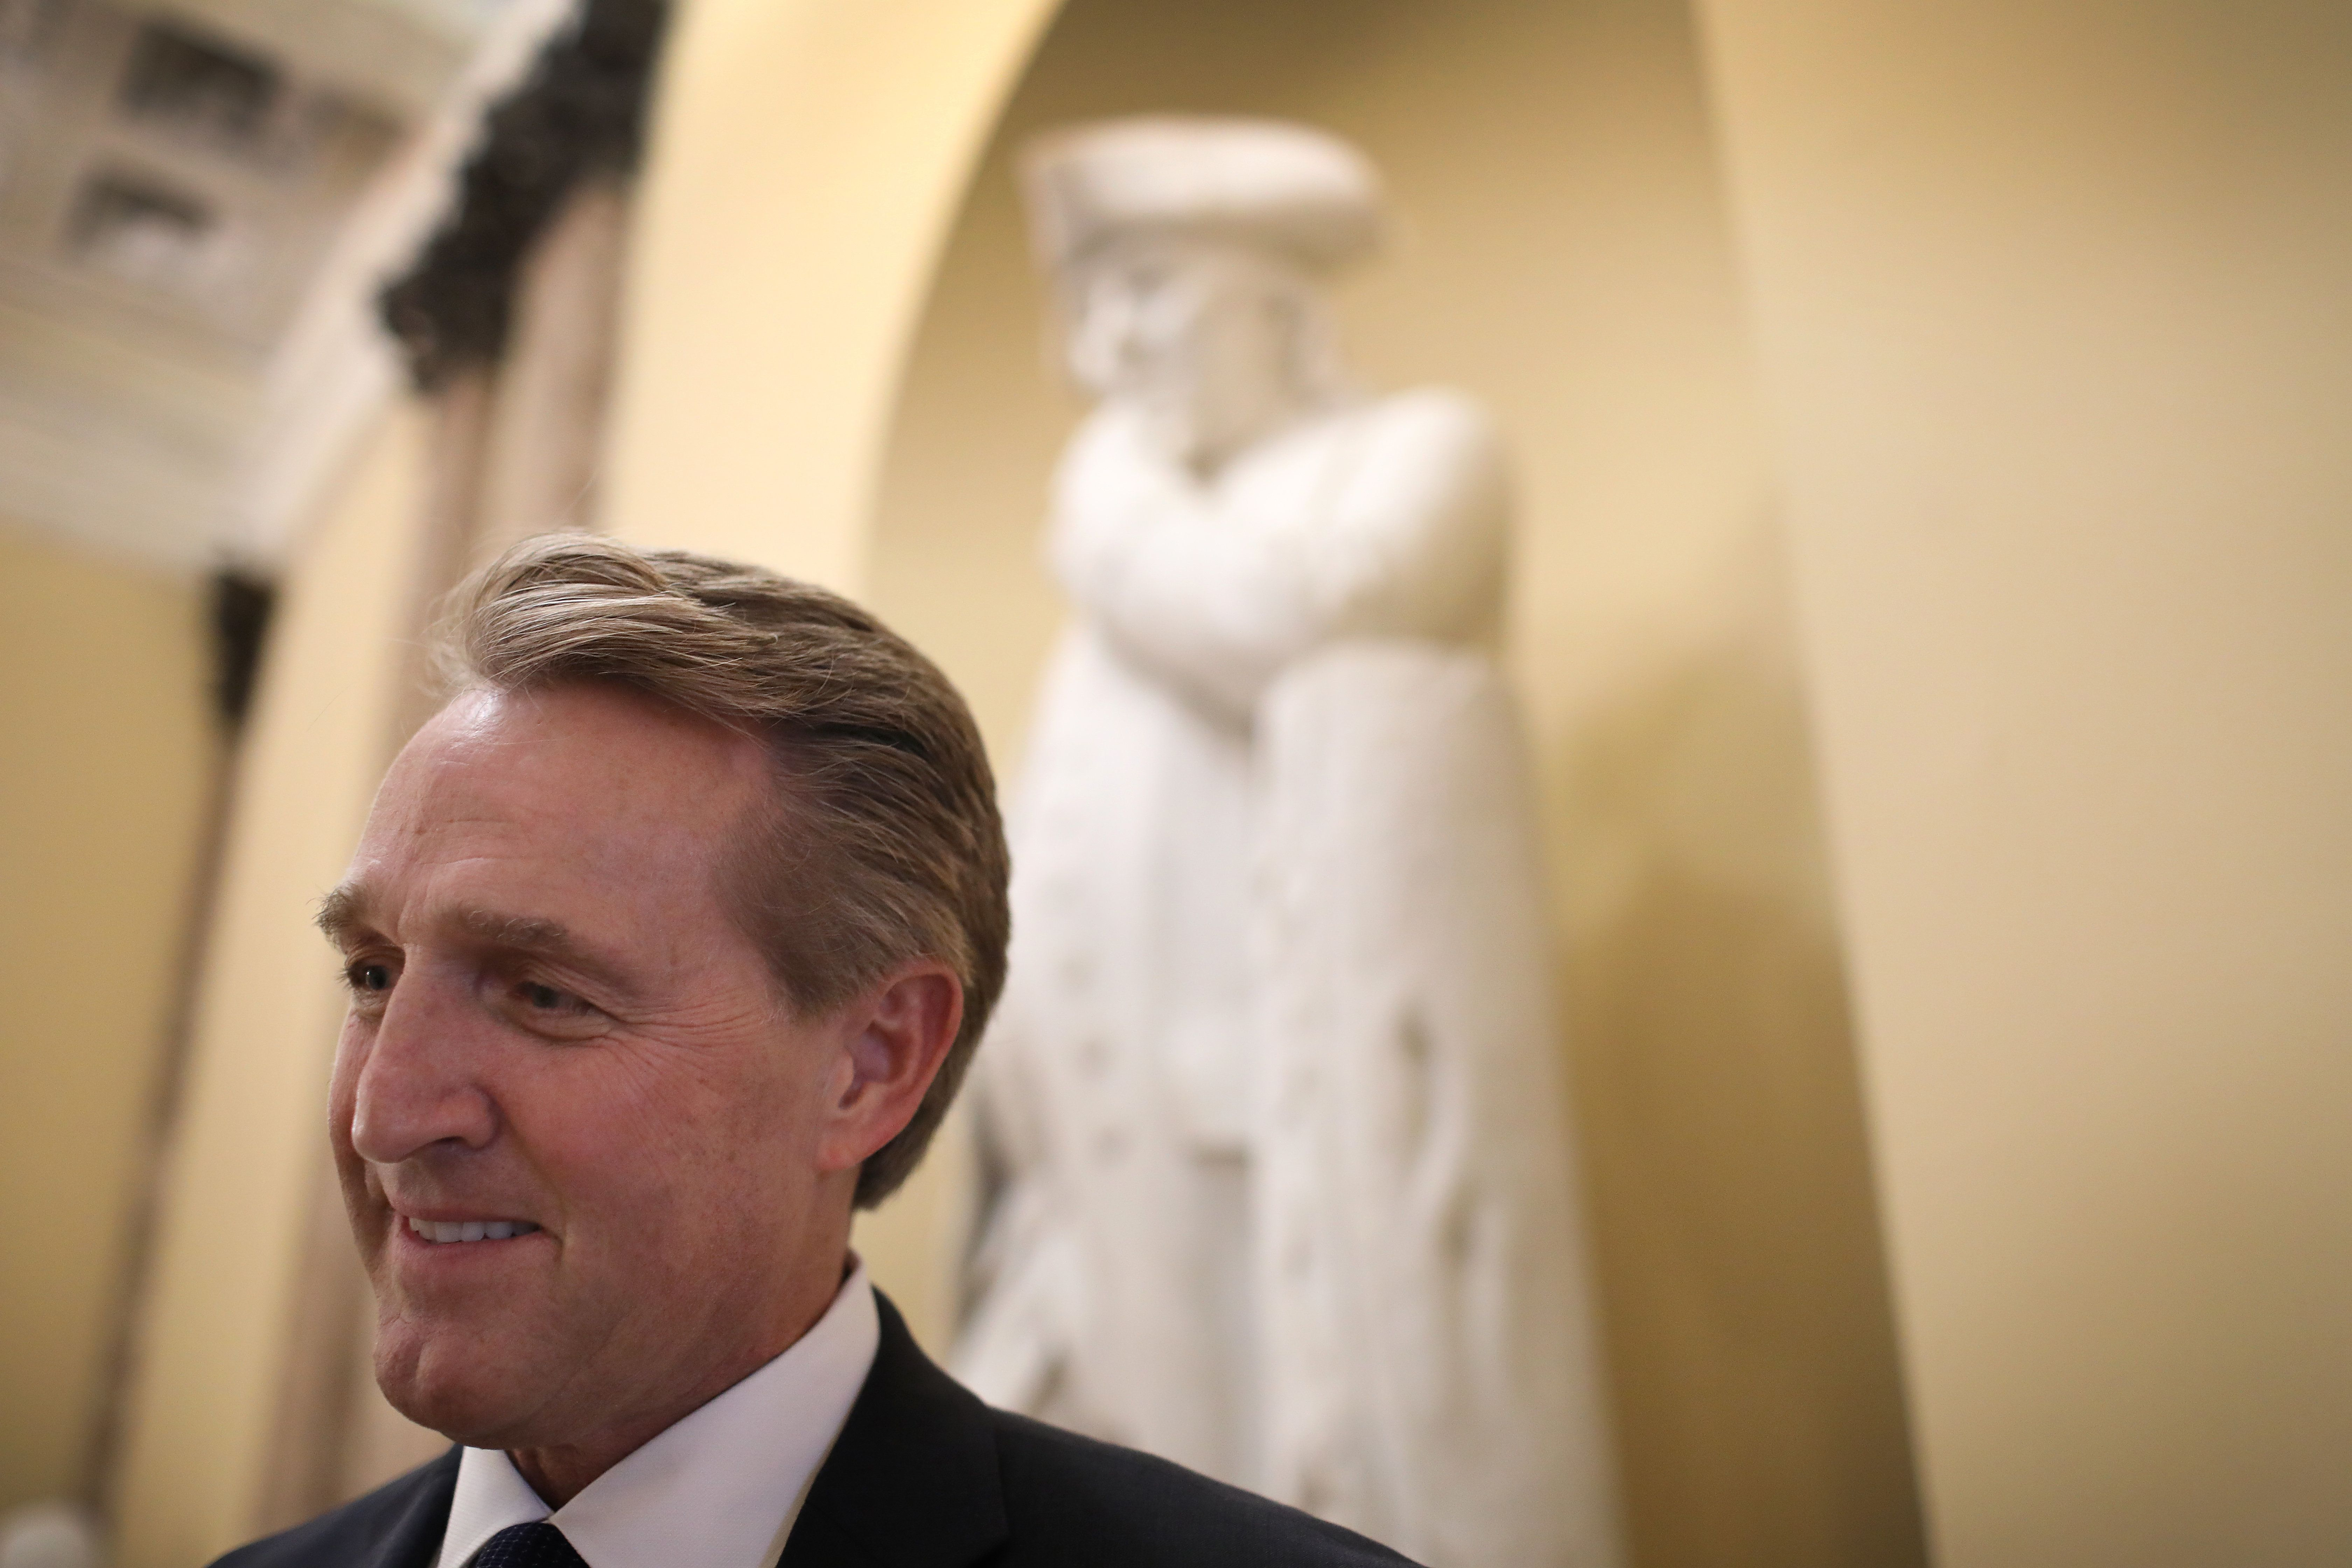 "WASHINGTON, DC - DECEMBER 13: Sen. Jeff Flake (R-AZ) answers questions from a reporter after delivering his farewell speech on the floor of the U.S. Senate December 13, 2018 in Washington, DC. During his speech Flake said, ""Let us recognize from this place here today that the shadow of tyranny is once again enveloping parts of the globe. And let us recognize as authoritarianism reasserts itself in country after country, that we are by no means immune.' (Photo by Win McNamee/Getty Images)"